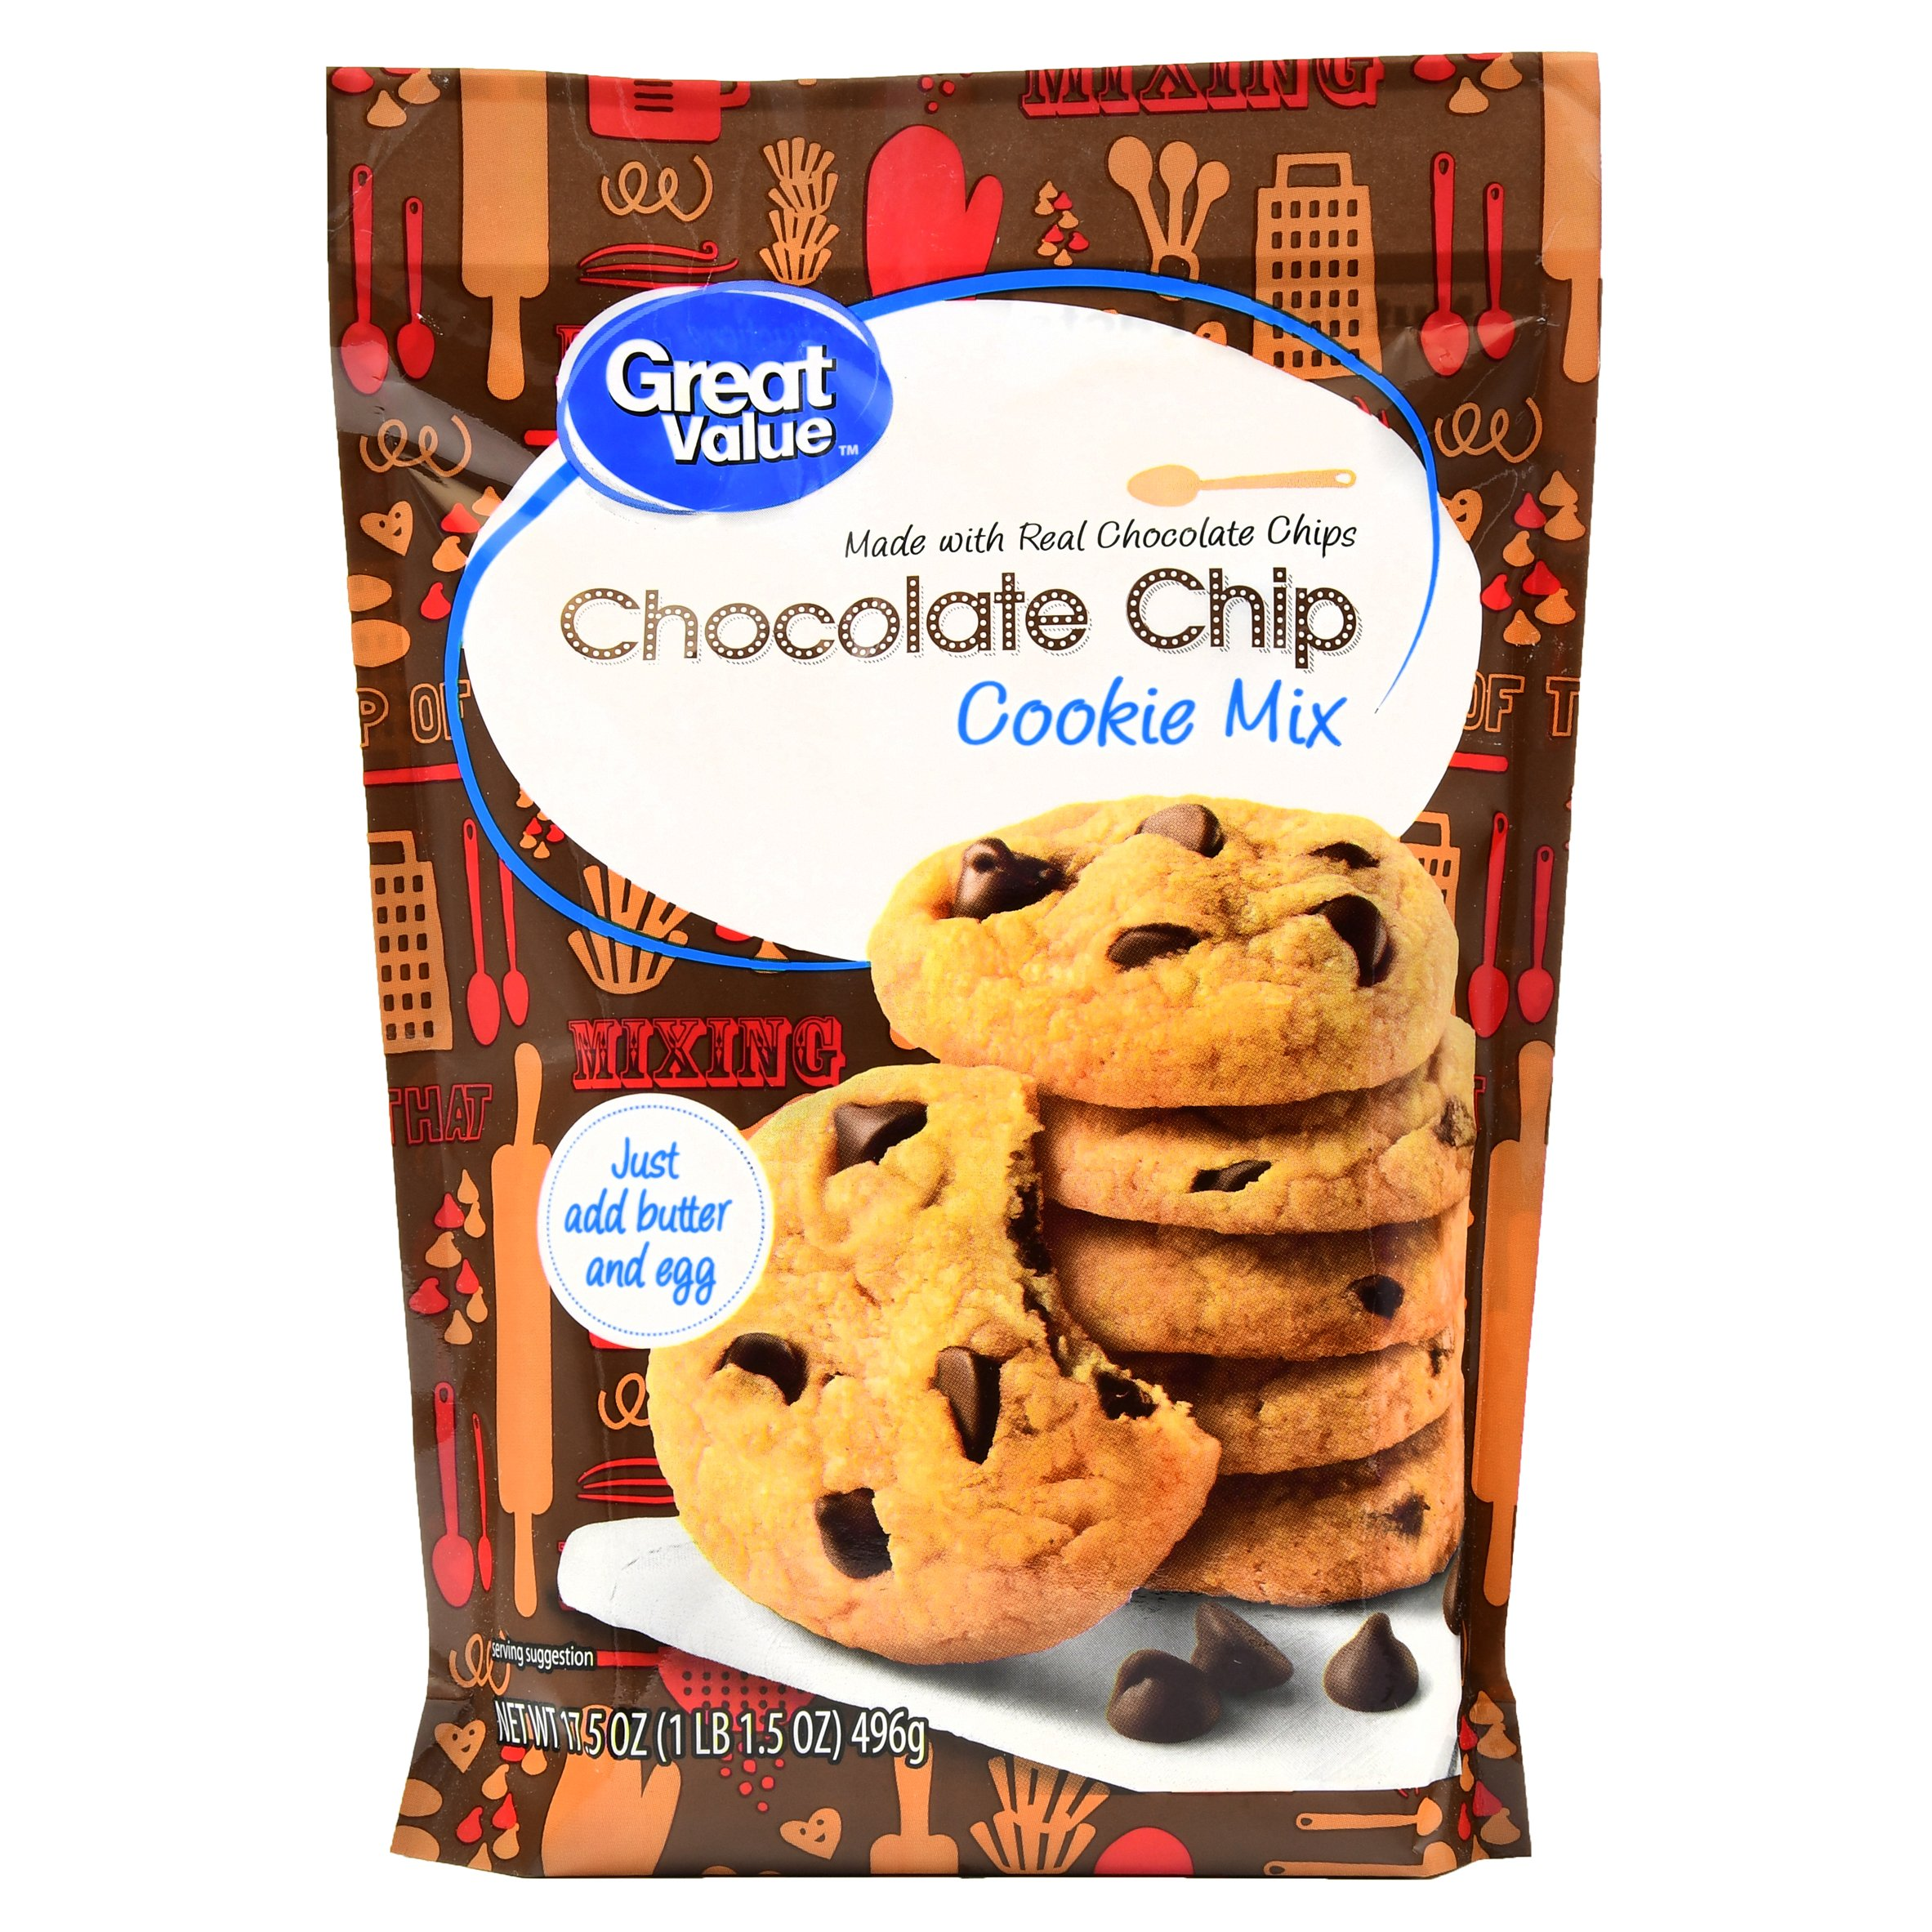 (4 Pack) Great Value Cookie Mix, Chocolate Chip, 17.5 oz